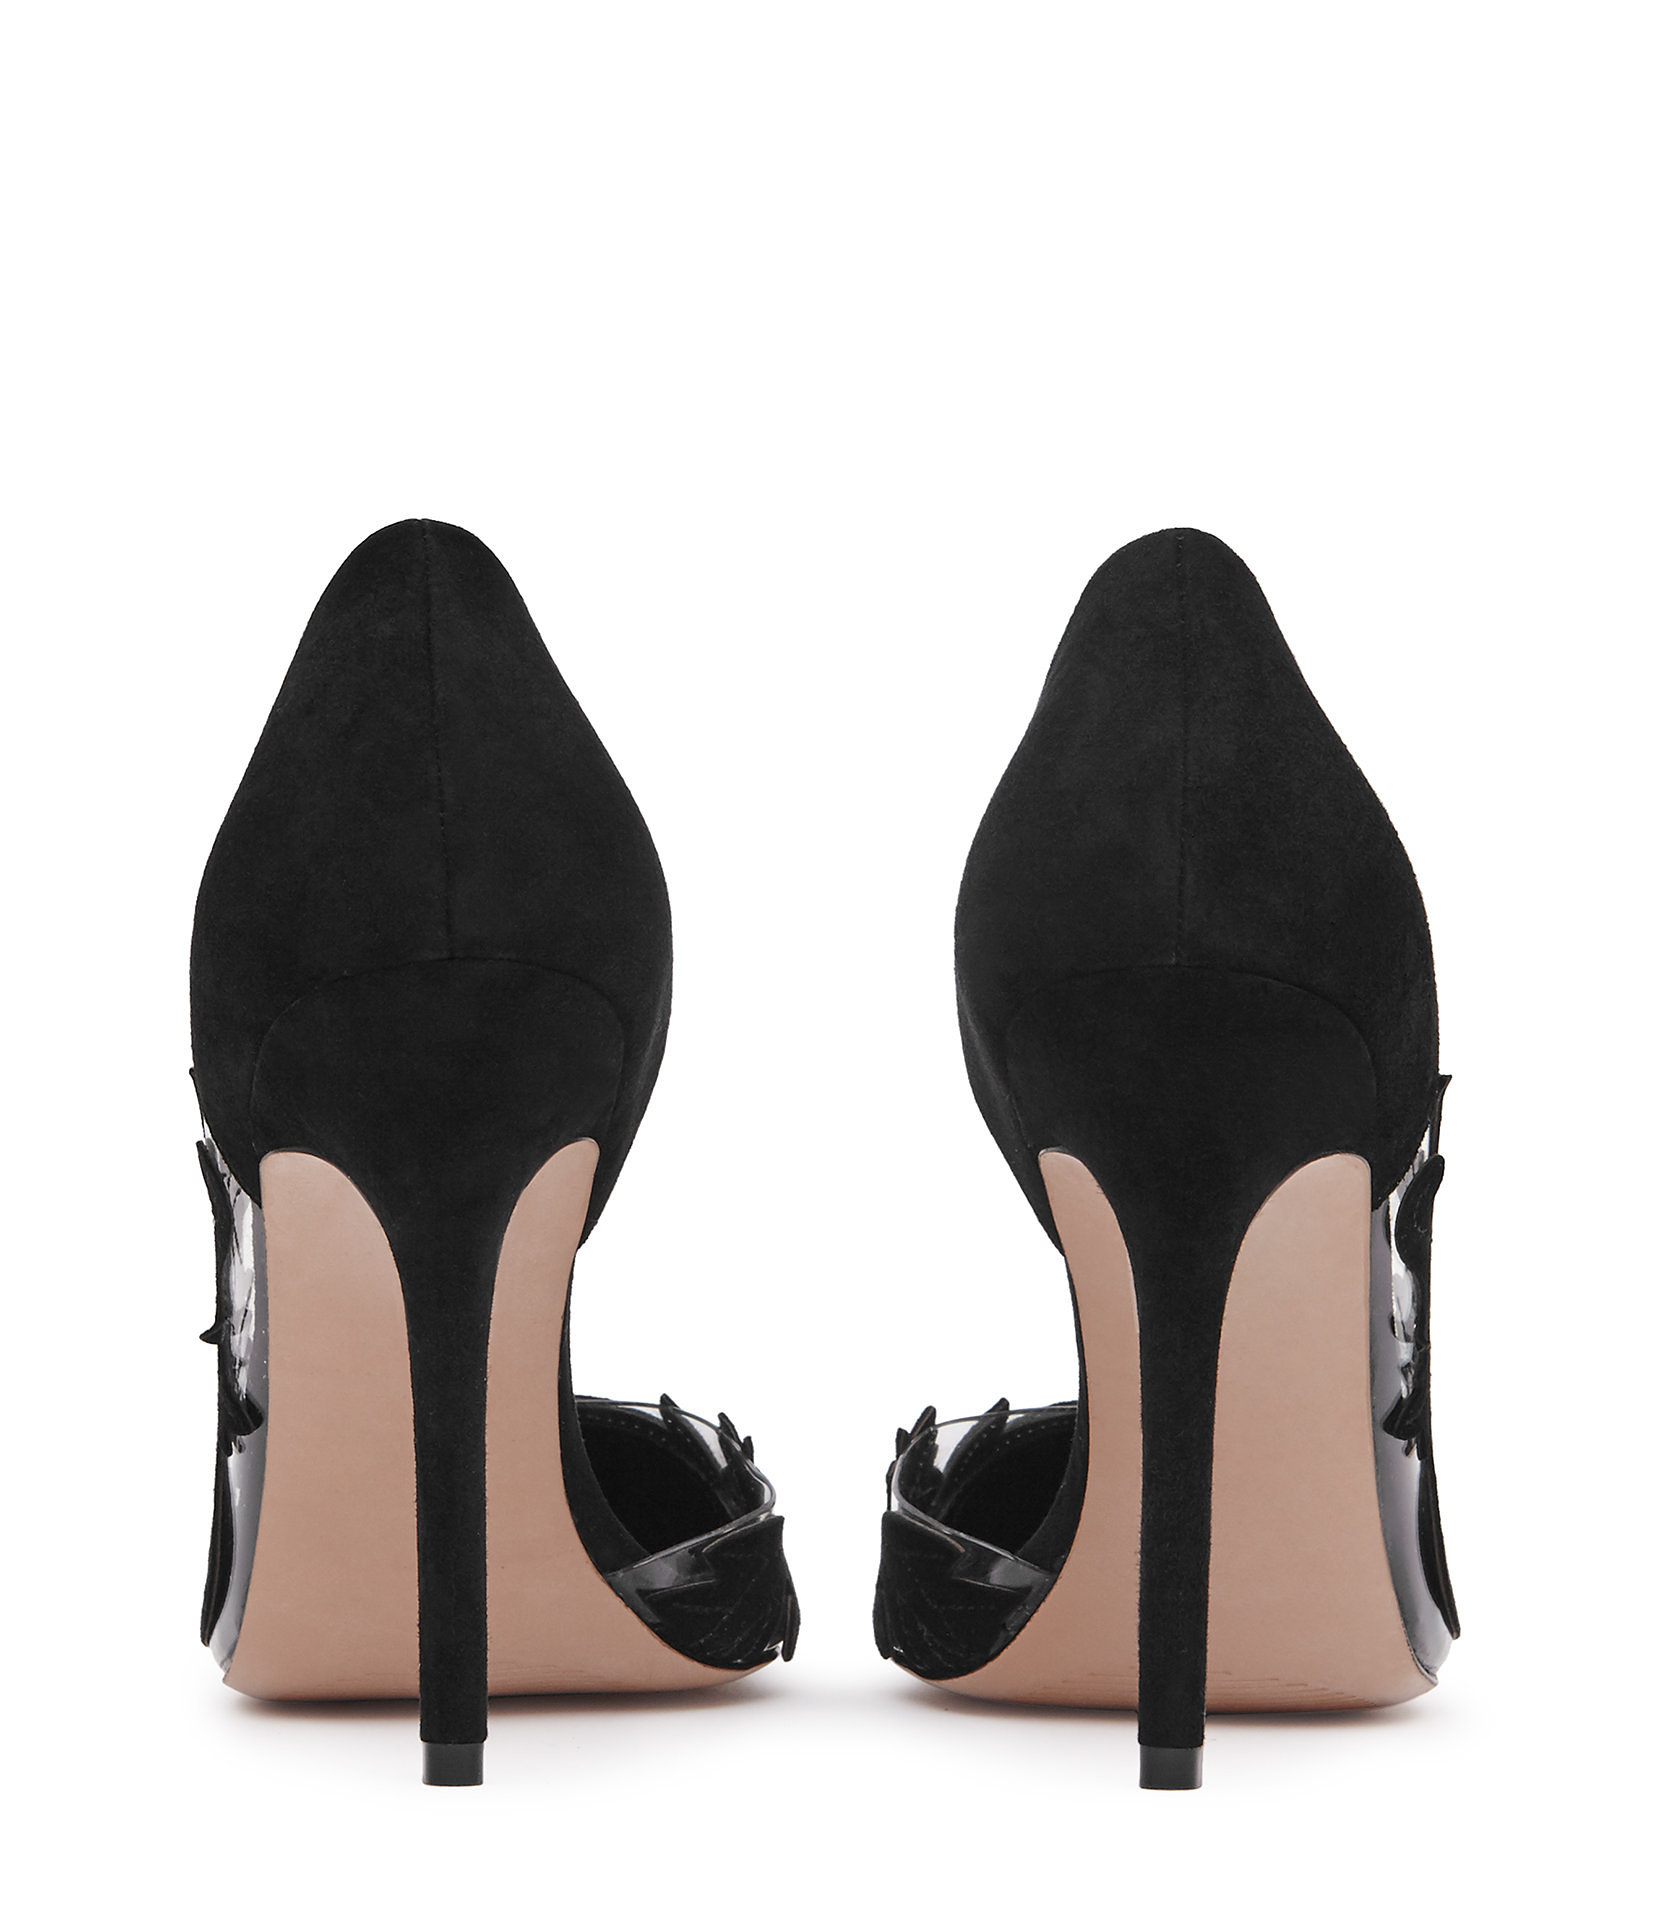 Tiber shoes 2